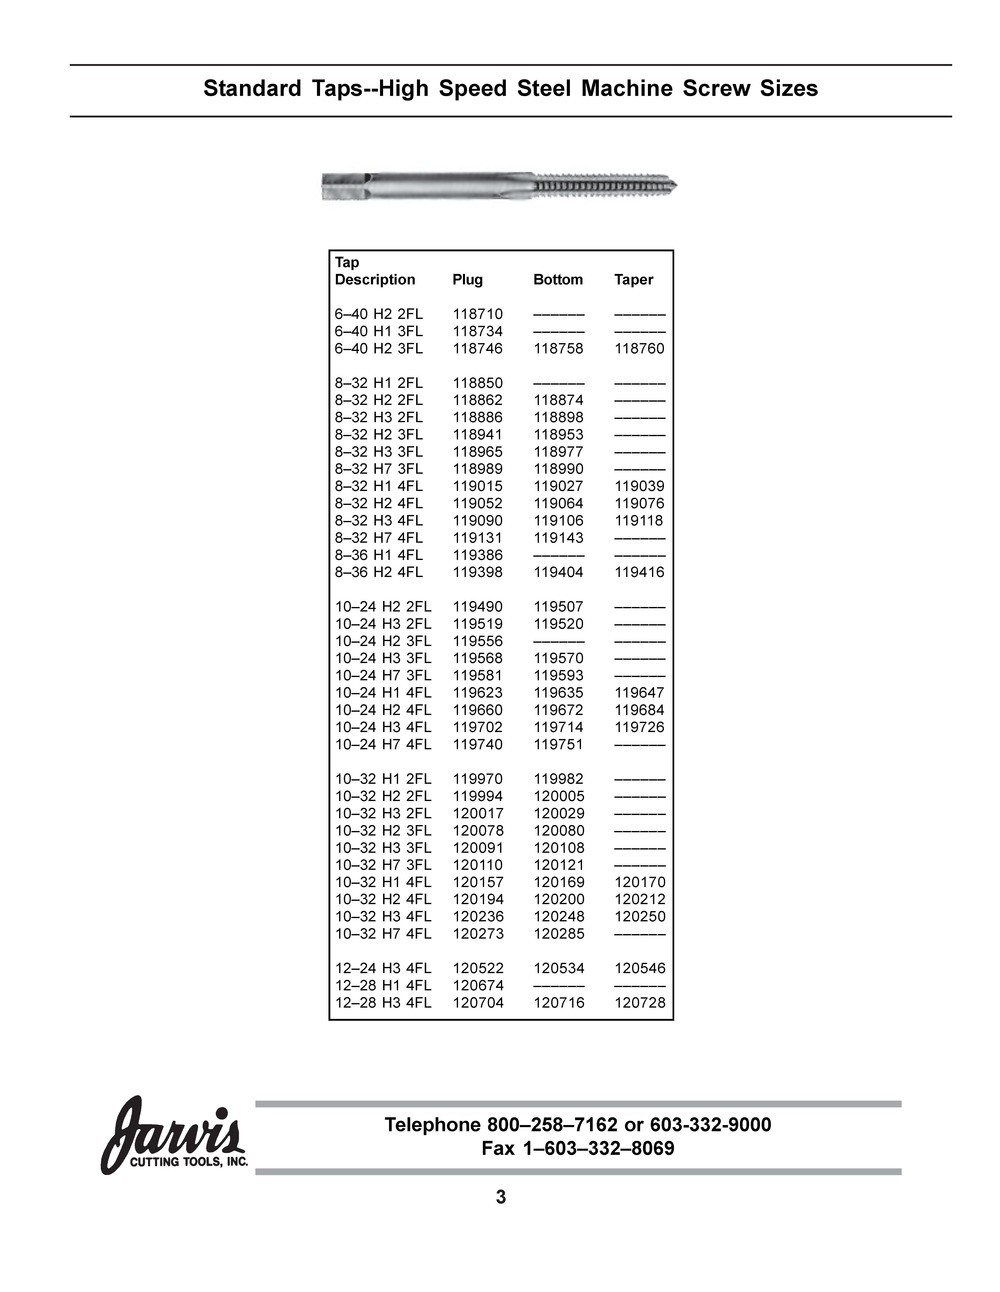 Standards-Catalog_Page_03.jpg